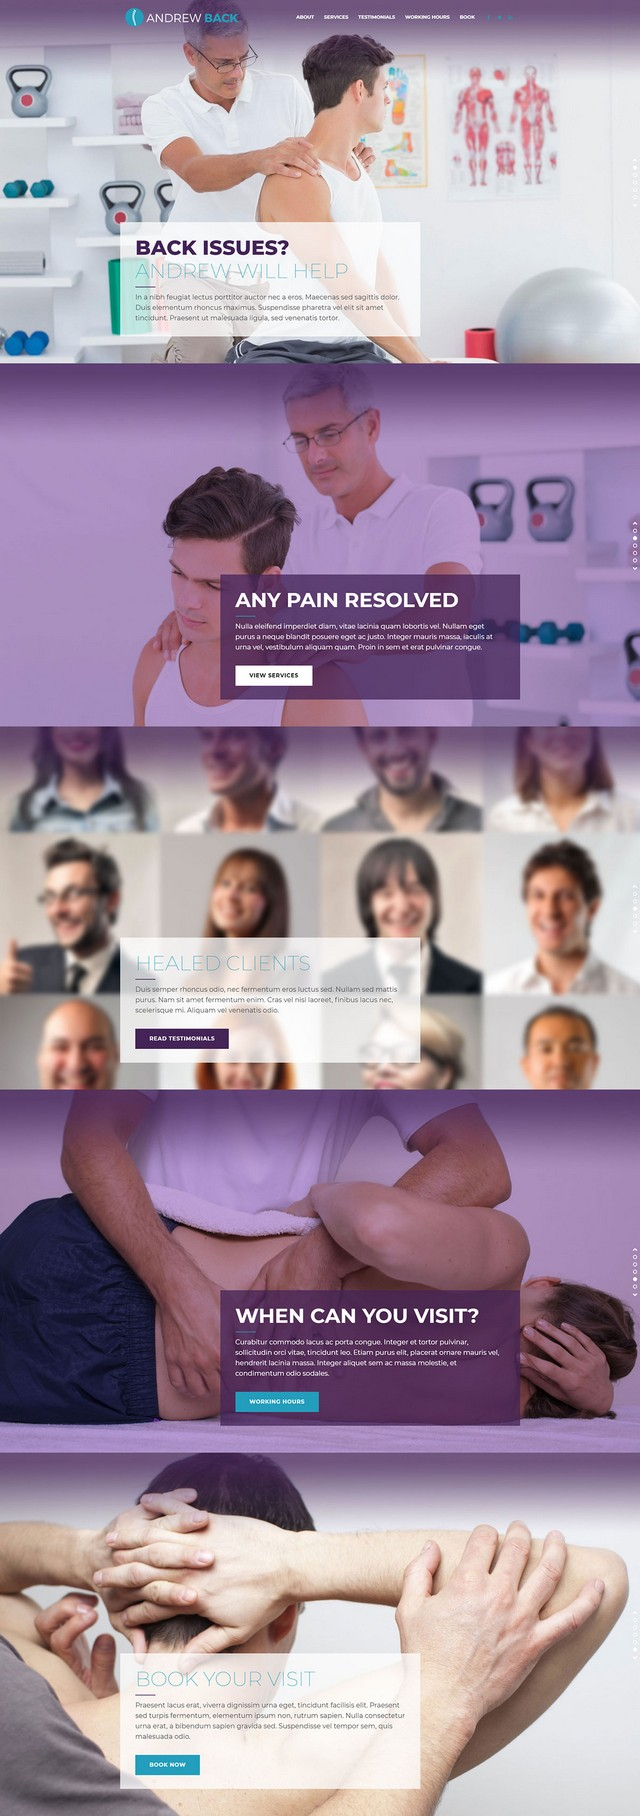 health and medical wordpress theme Medicare homepage layout for physiatrist